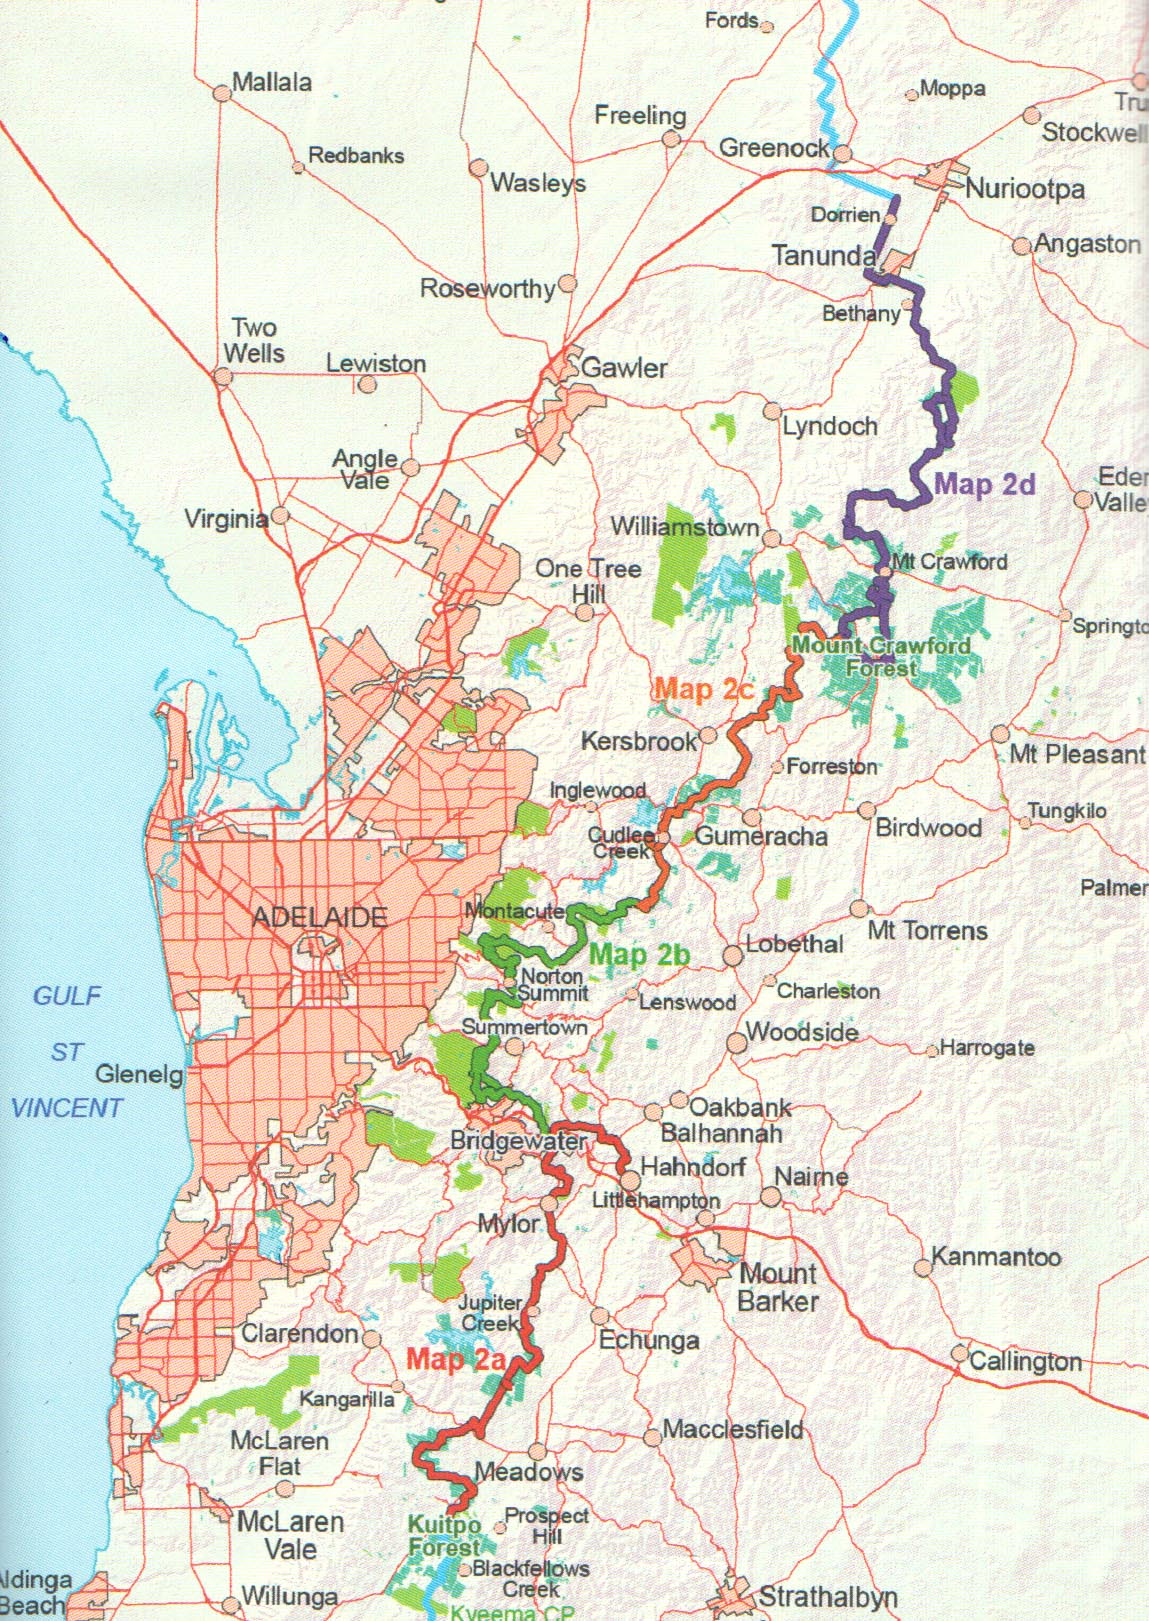 Heysen Trail Sheet Map 2 Kuitpo Forest To Tanunda The